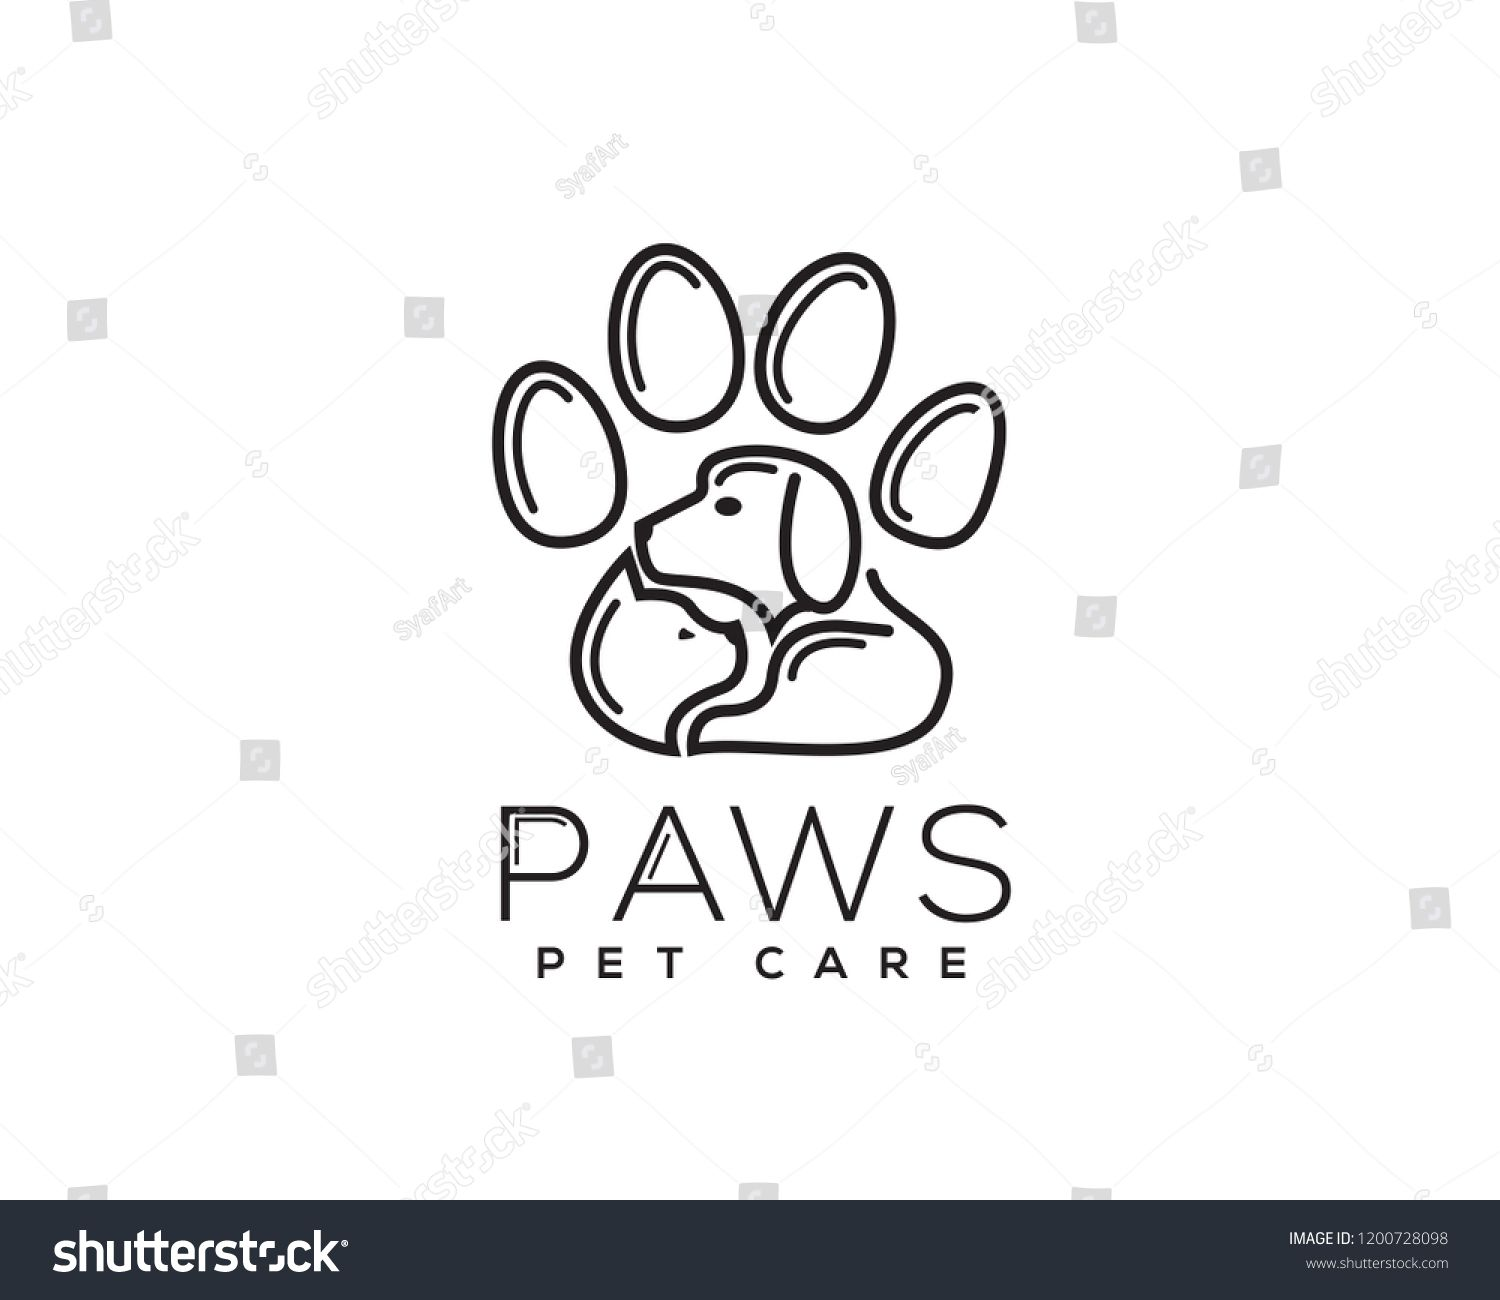 cat and dog in paws logo design inspiration image vector ...